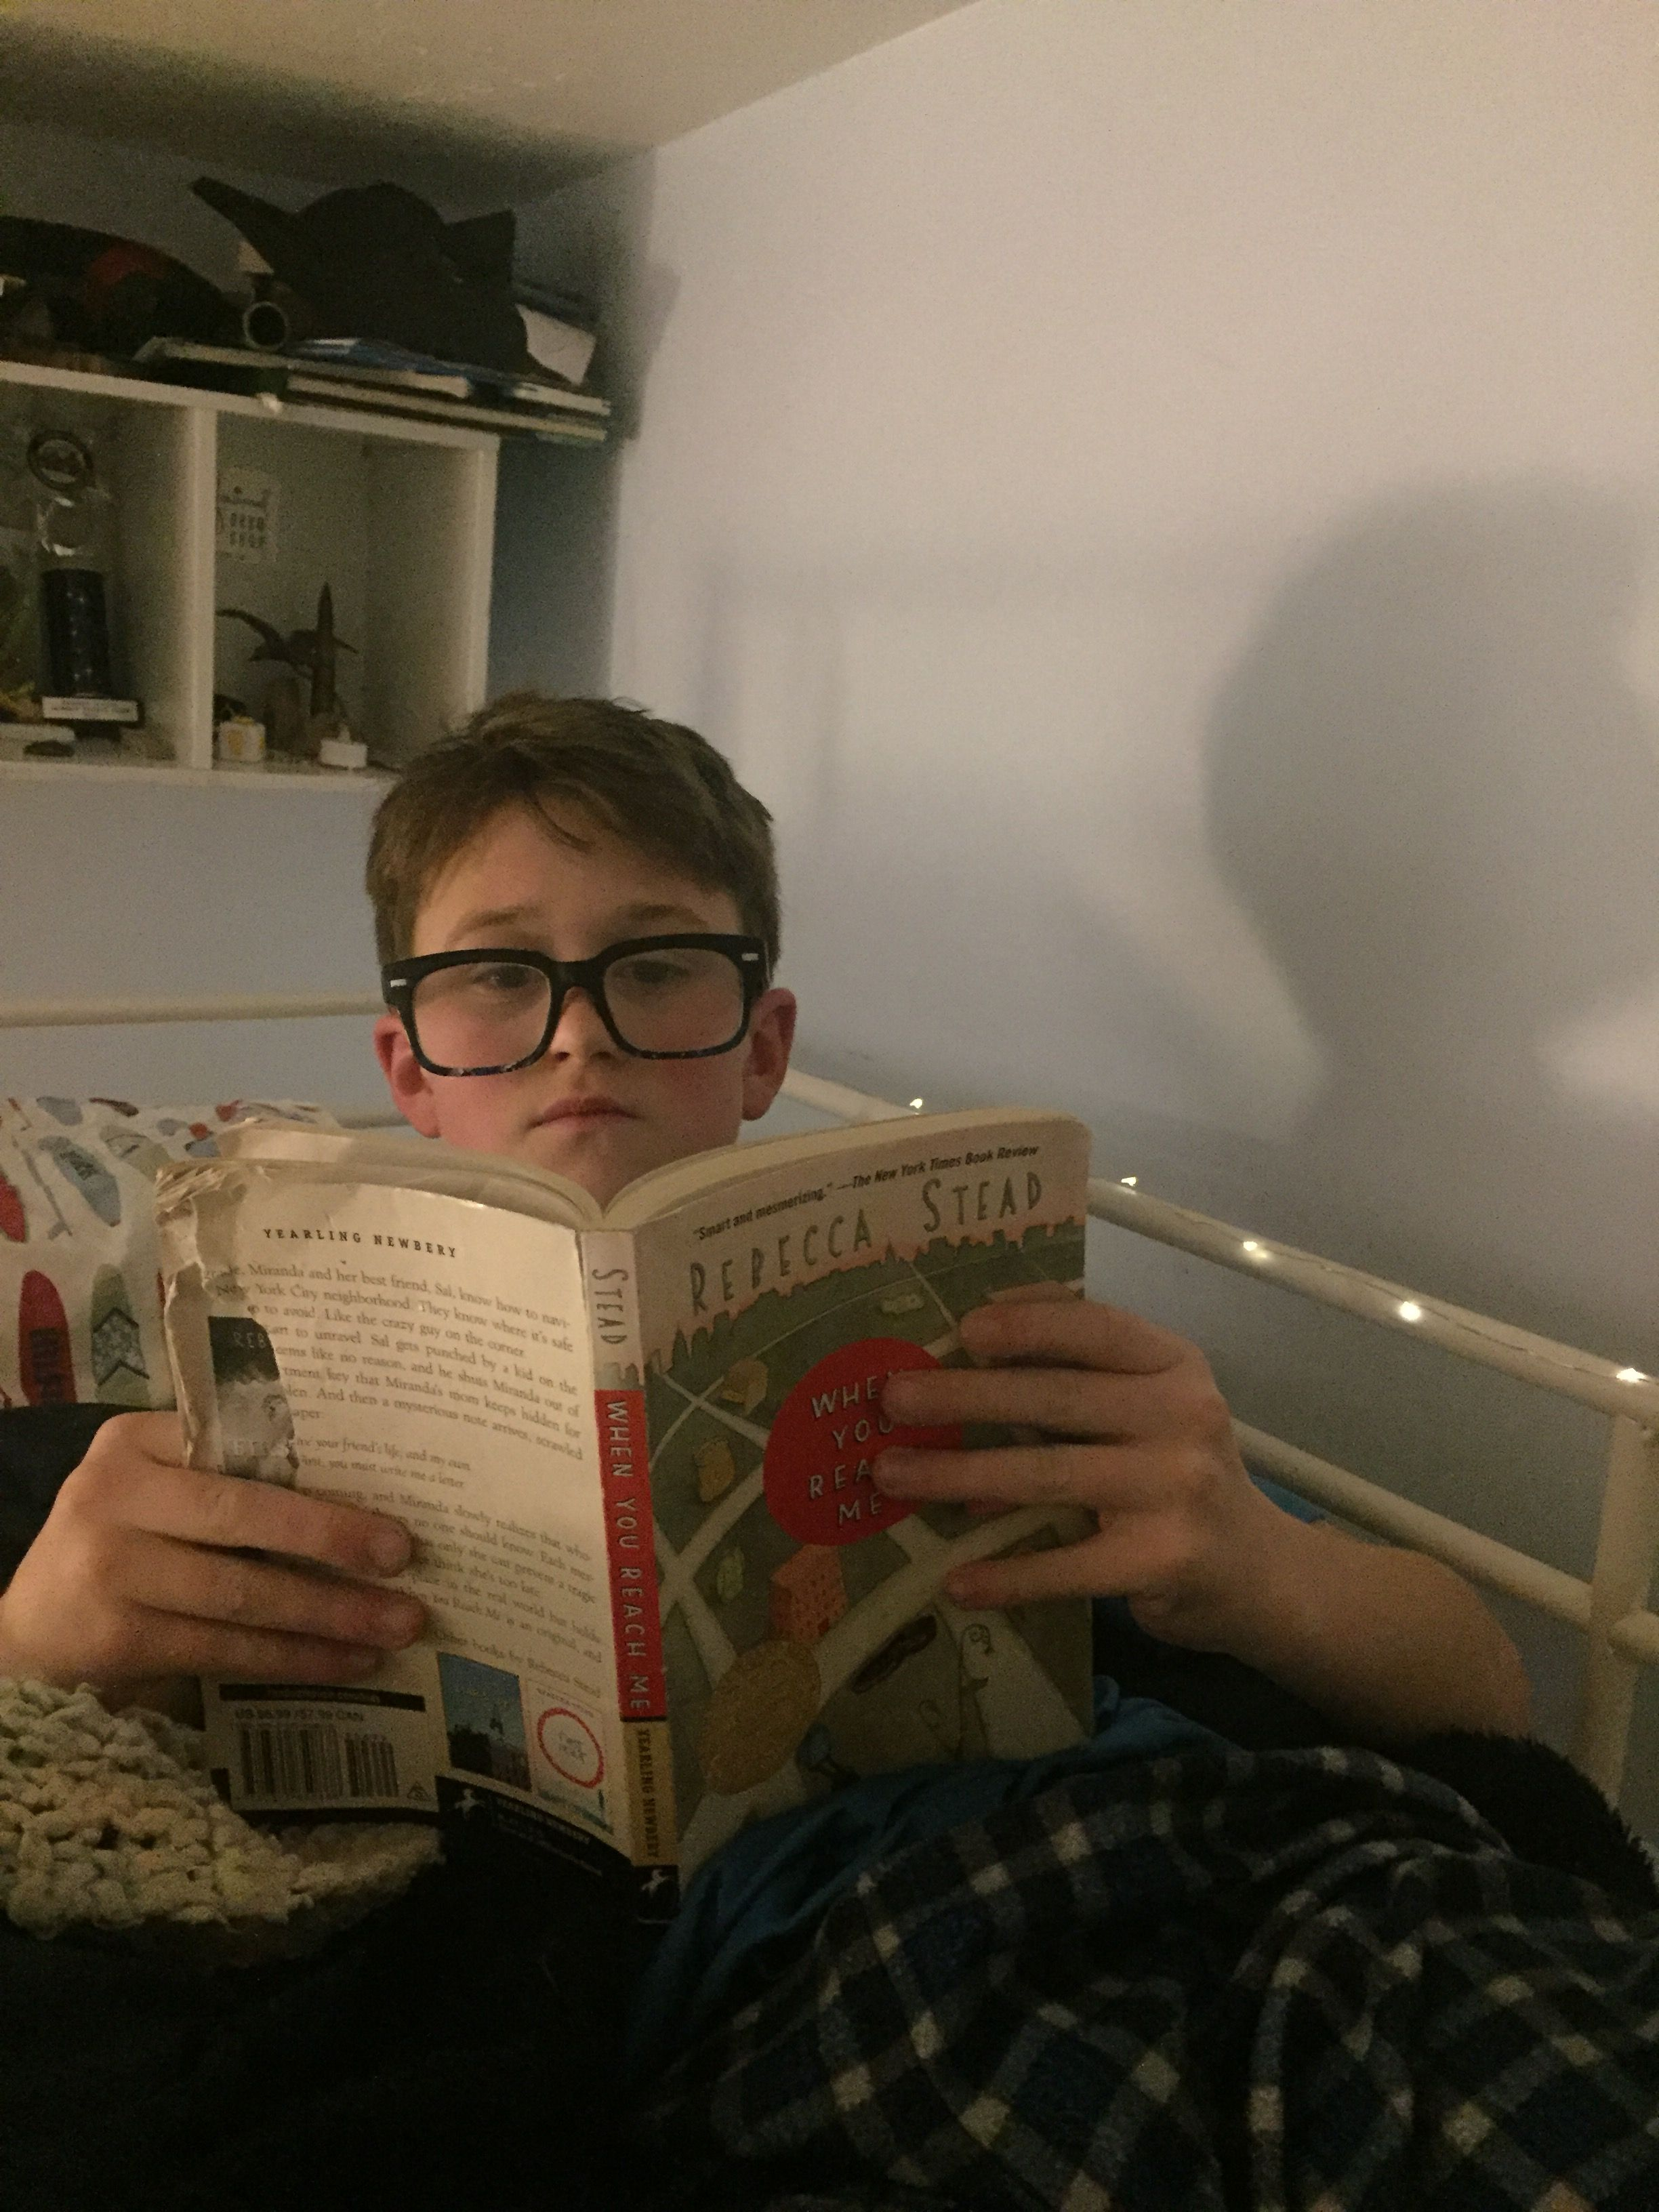 Intent- he intended to read with his new prescription